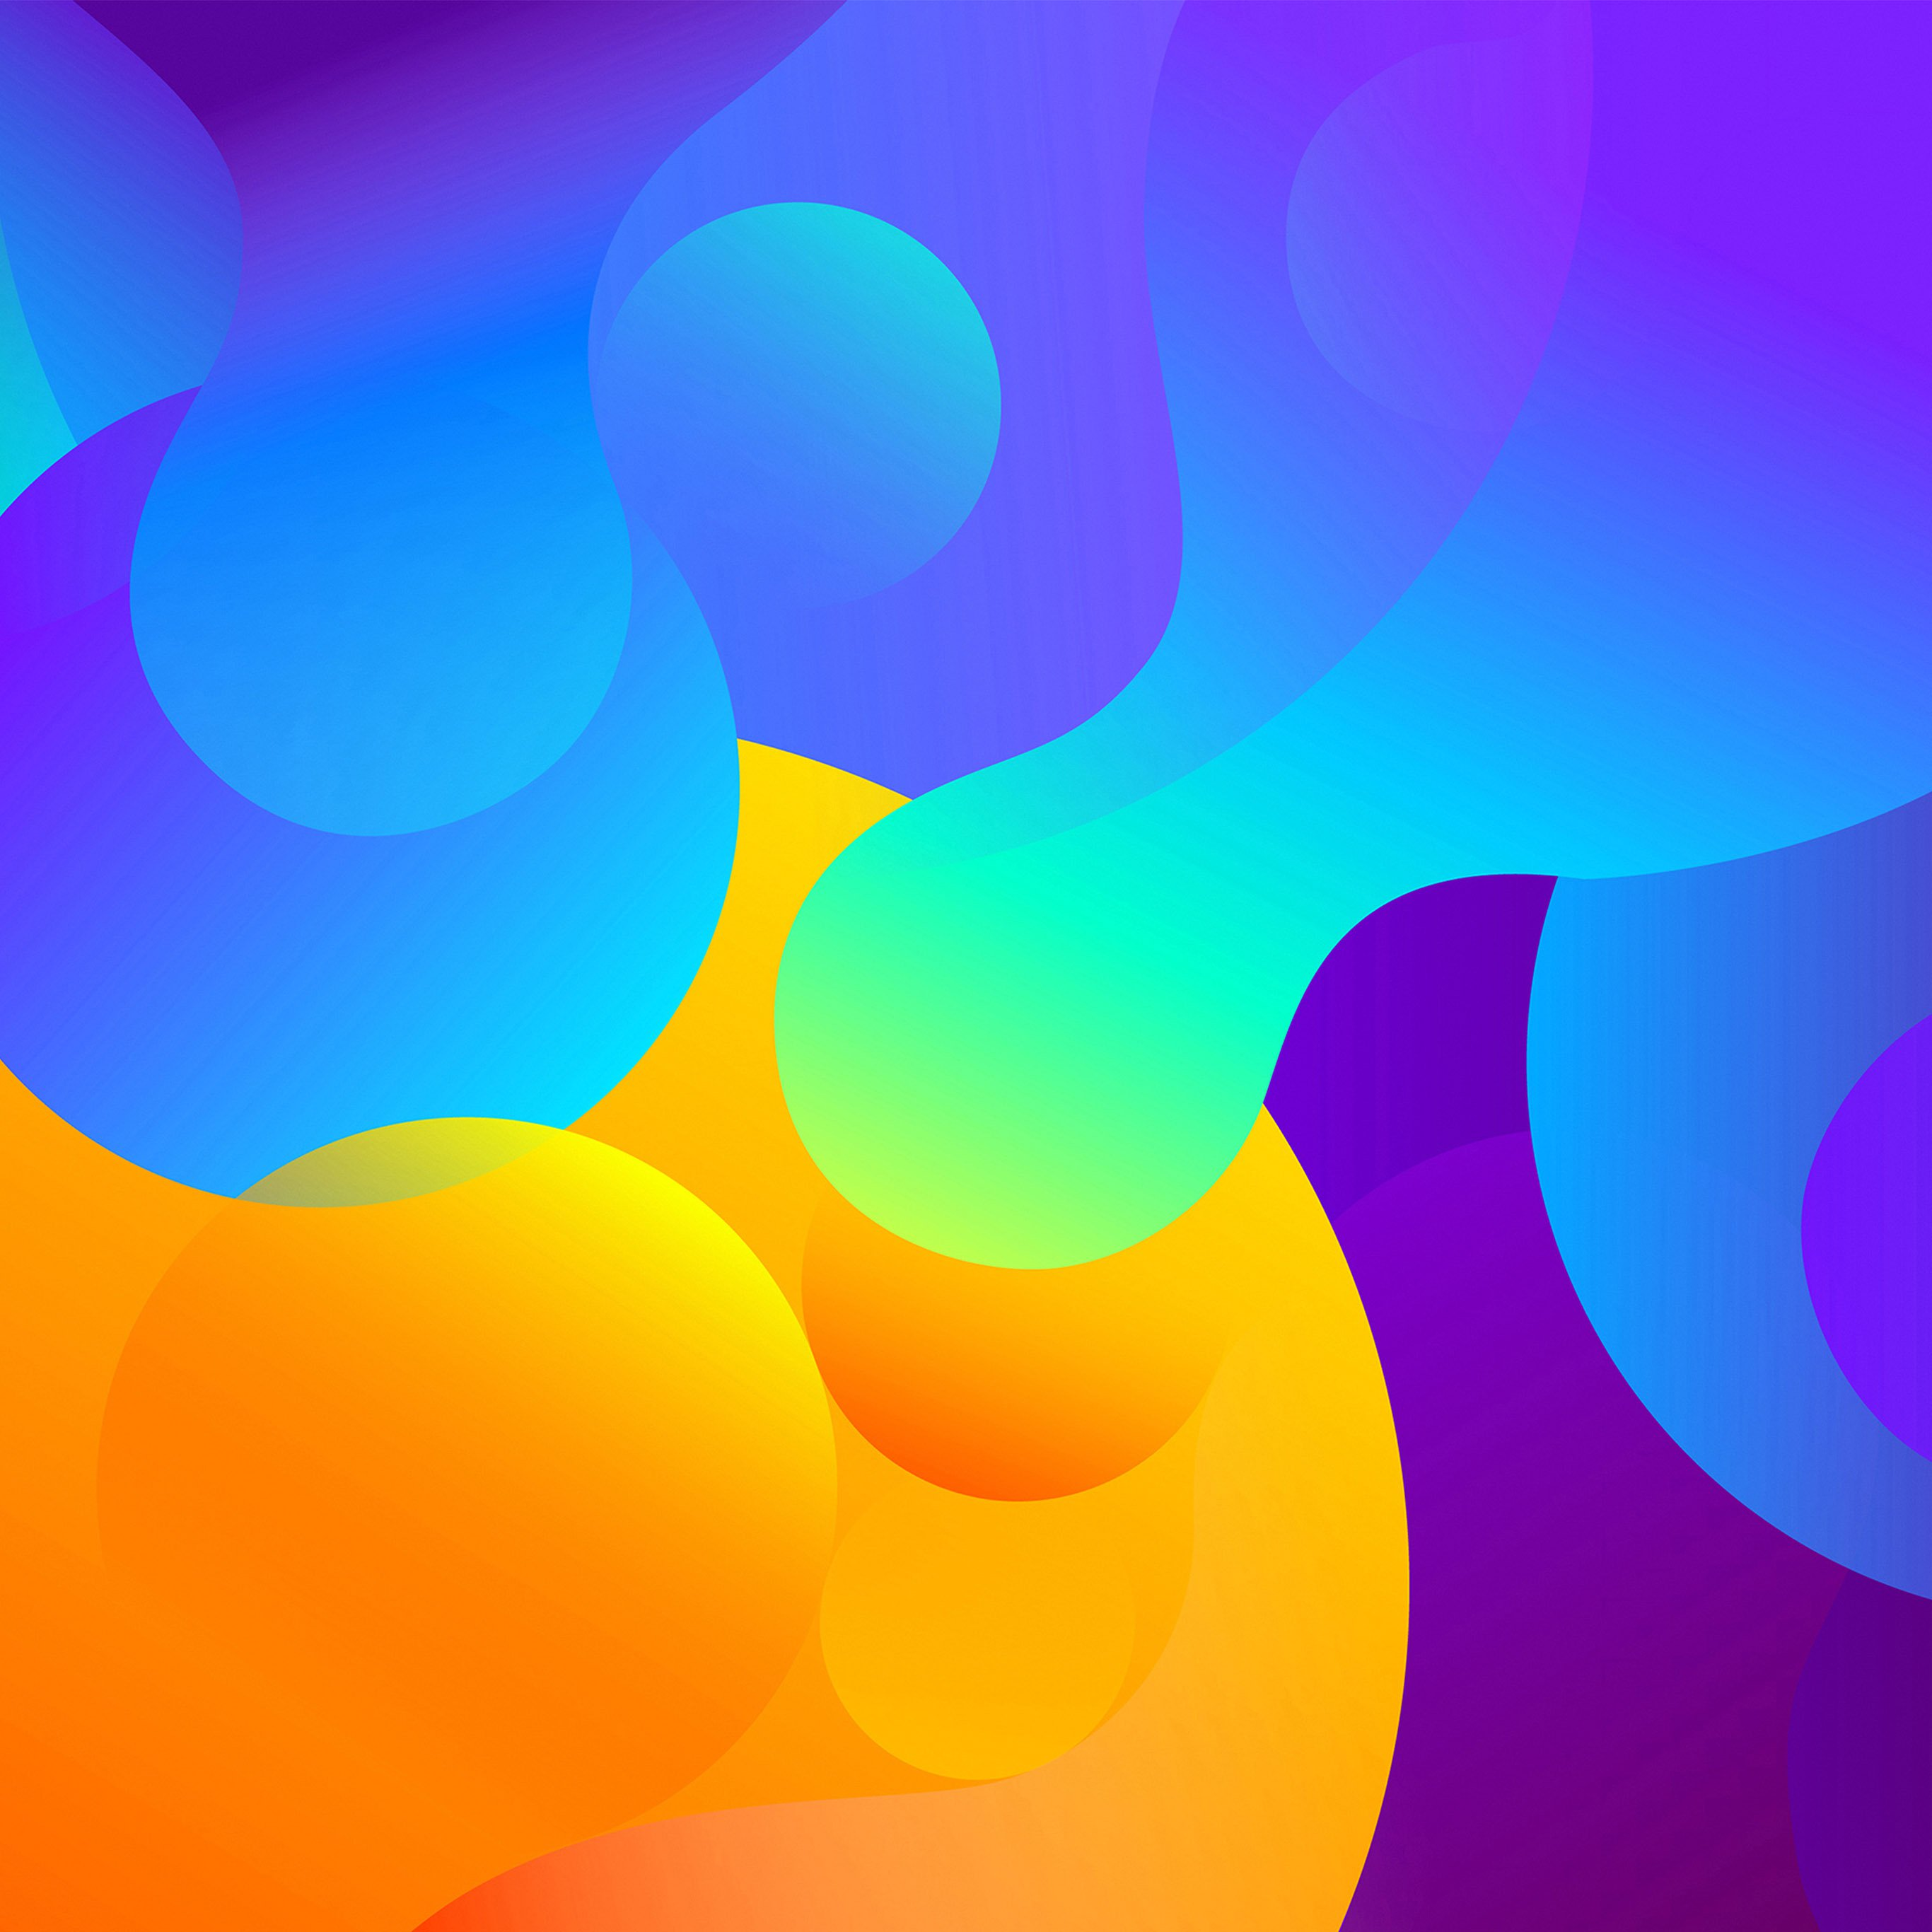 Abstract art color basic background pattern iPad Pro Wallpapers 2732x2732